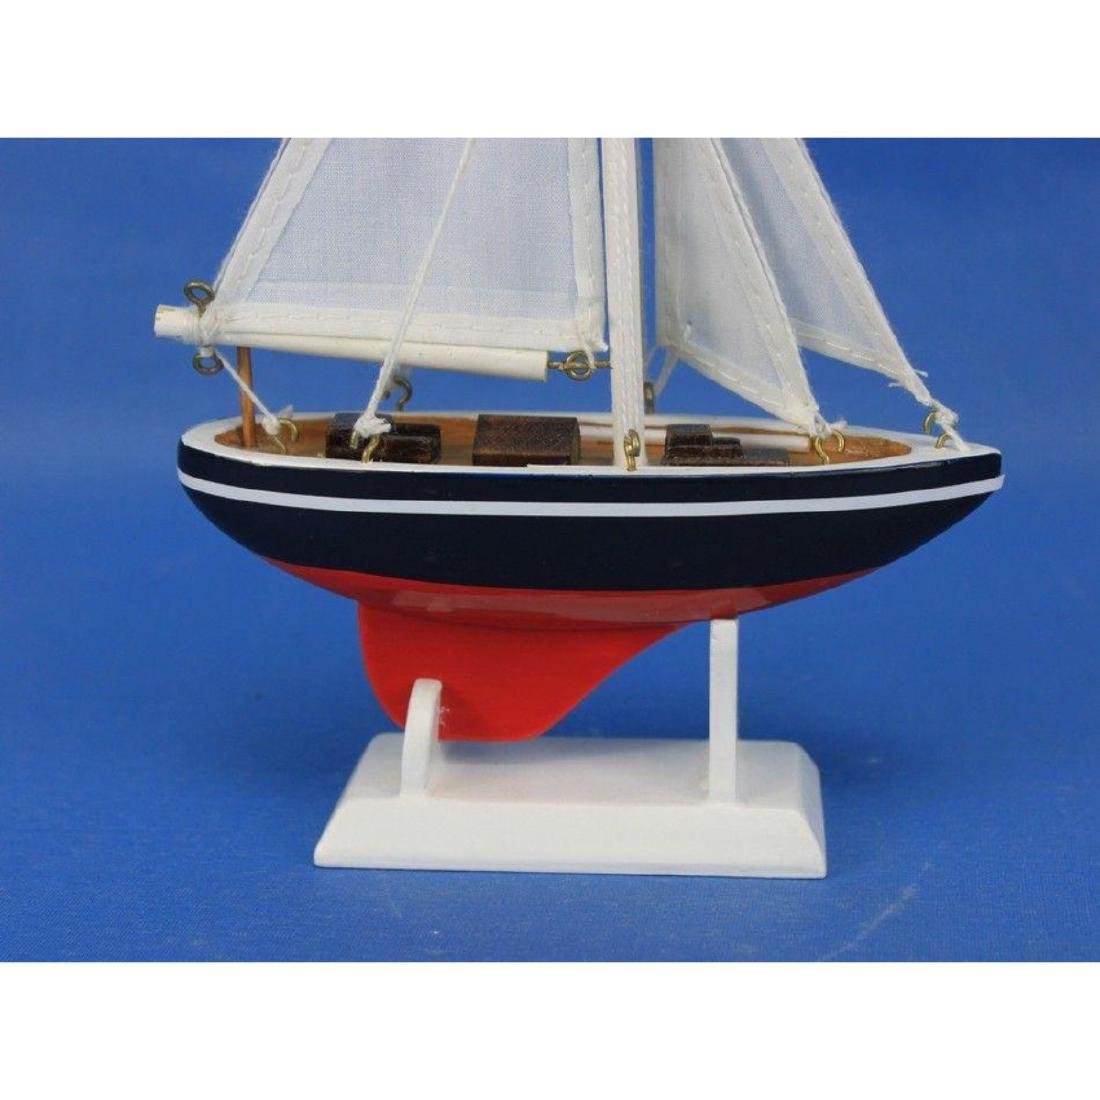 "Wooden American Sailer Model Sailboat Decoration 9"" - 5"